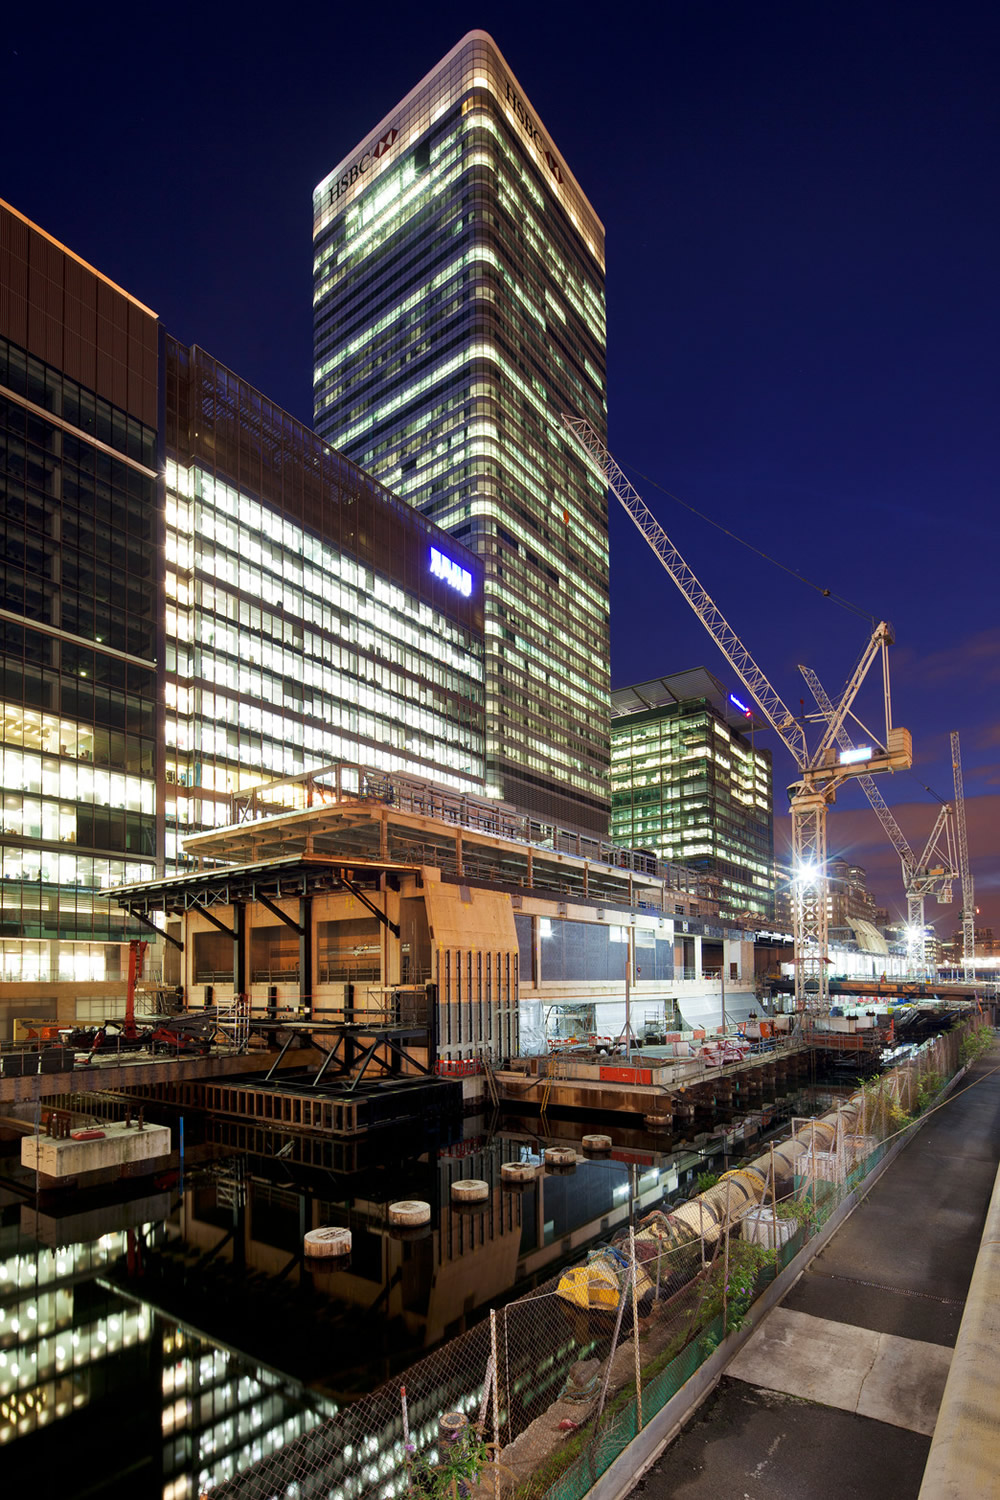 In Pictures Canary Wharf Crossrail Station London